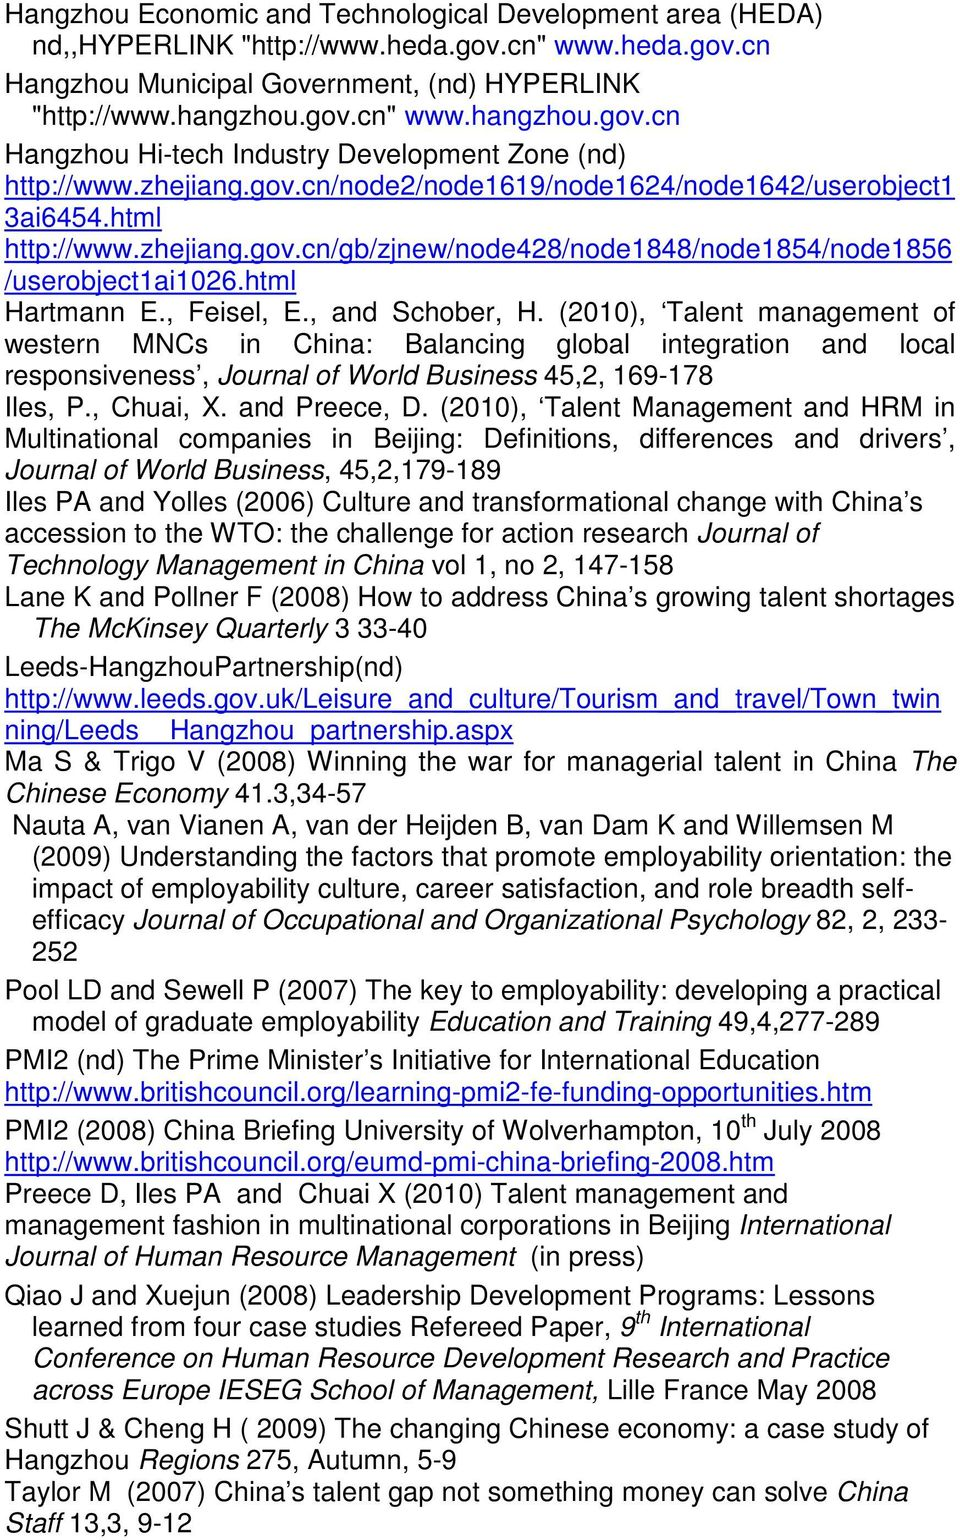 , and Schober, H. (2010), Talent management of western MNCs in China: Balancing global integration and local responsiveness, Journal of World Business 45,2, 169-178 Iles, P., Chuai, X. and Preece, D.